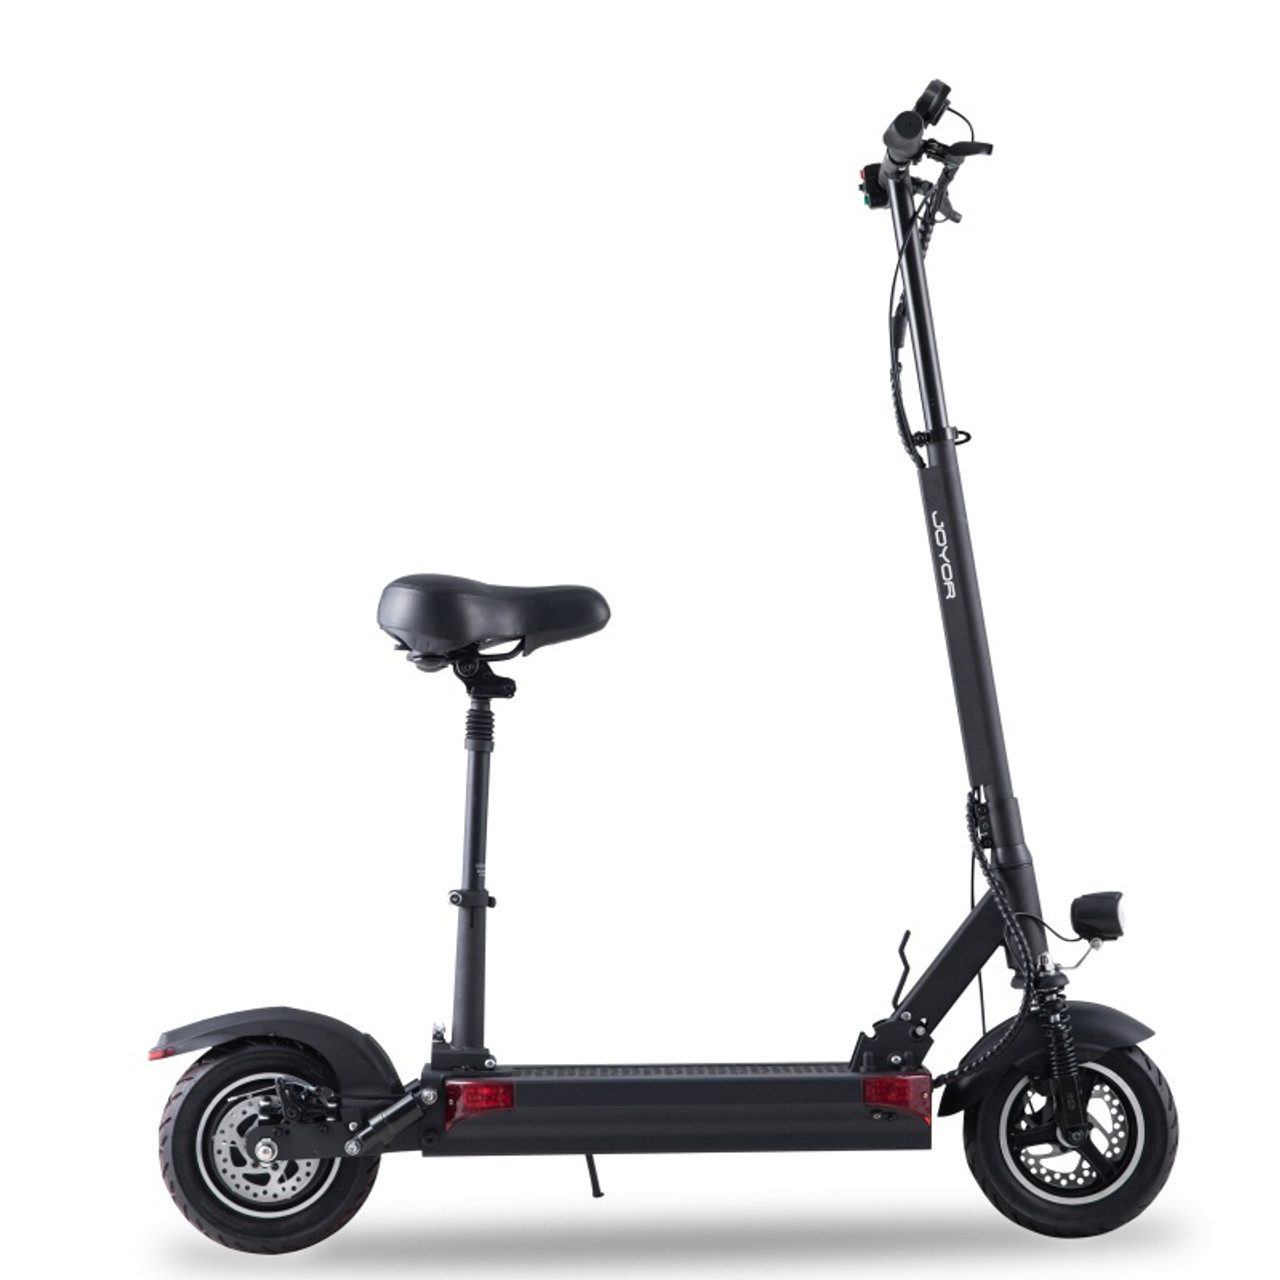 Y8-S 50 9 Miles Long-Range Electric Scooter - Black